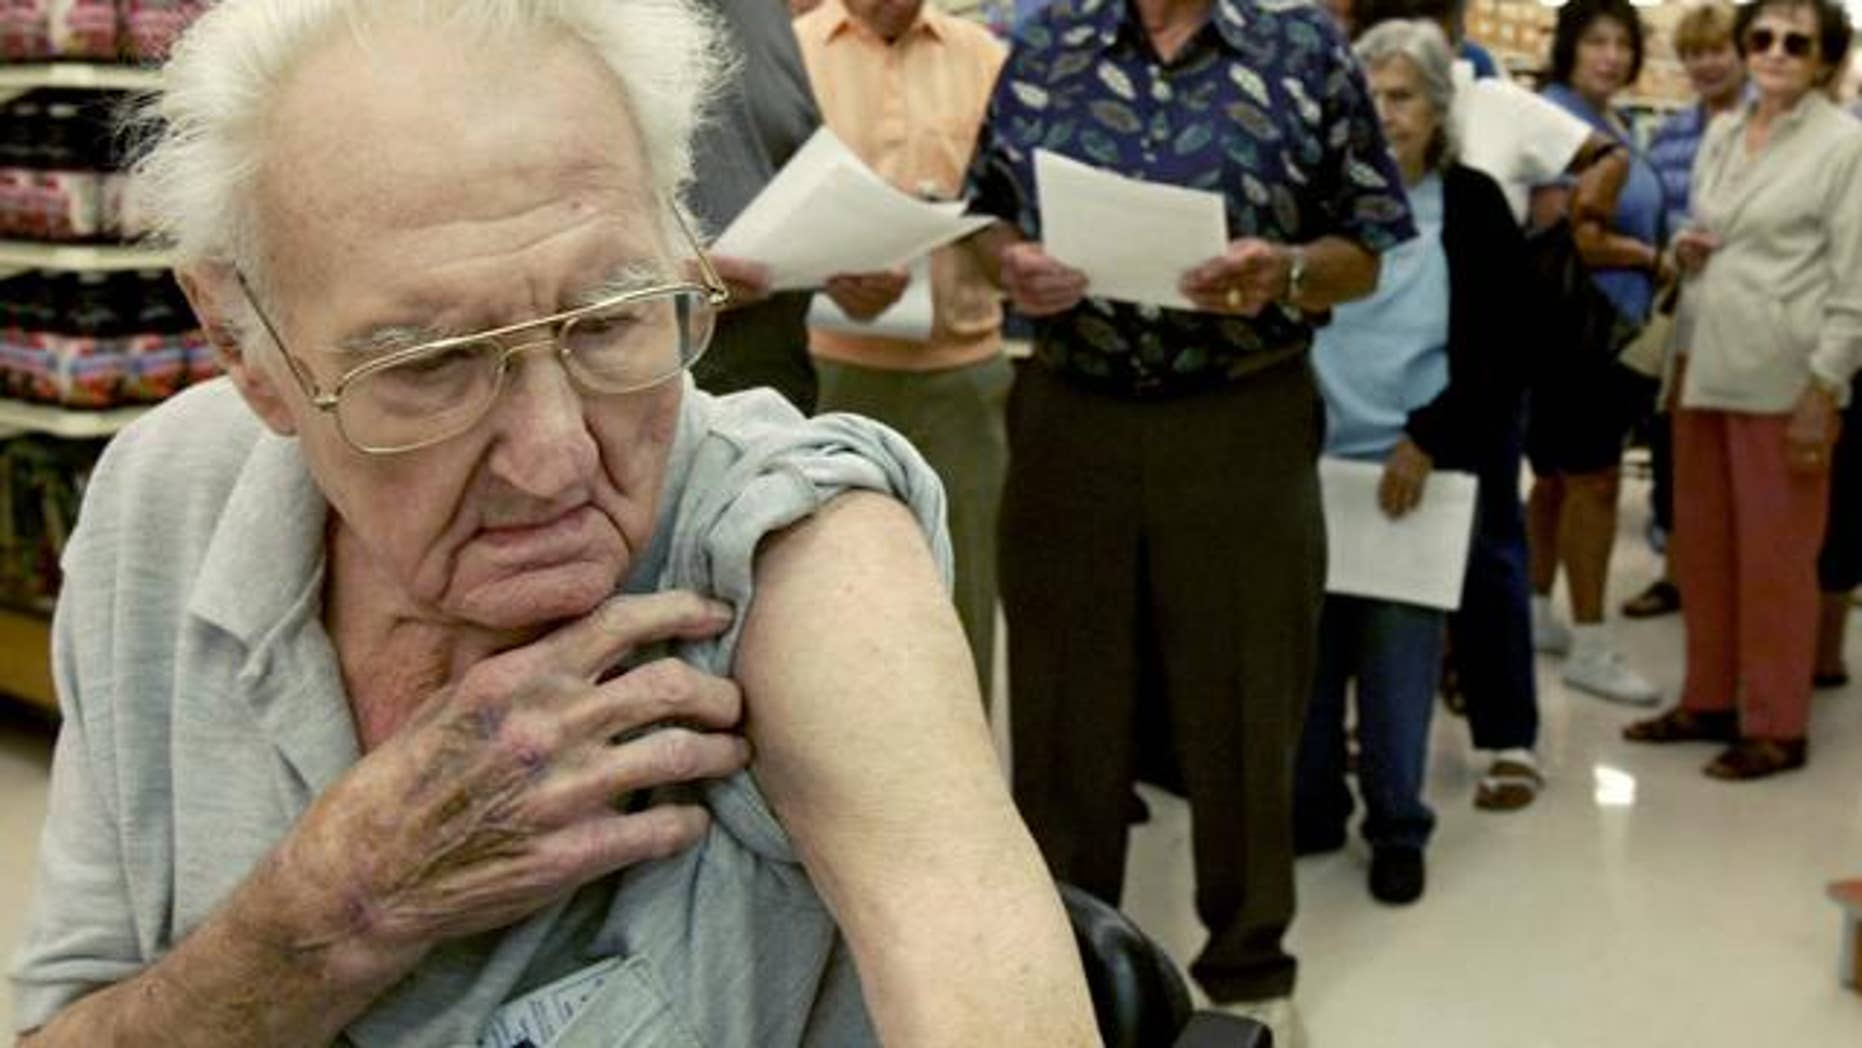 Pete Jacksen, 86, waits in line to get a flu shot at Pavilions pharmacy in Monrovia, Calif., Thursday, Oct. 7, 2004. Health officials nationwide are urging healthy adults and schoolchildren to skip the shot because British regulators have shut down the major flu-shot supplier Chiron on Tuesday, citing manufacturing problems.(AP Photo/Nick Ut)